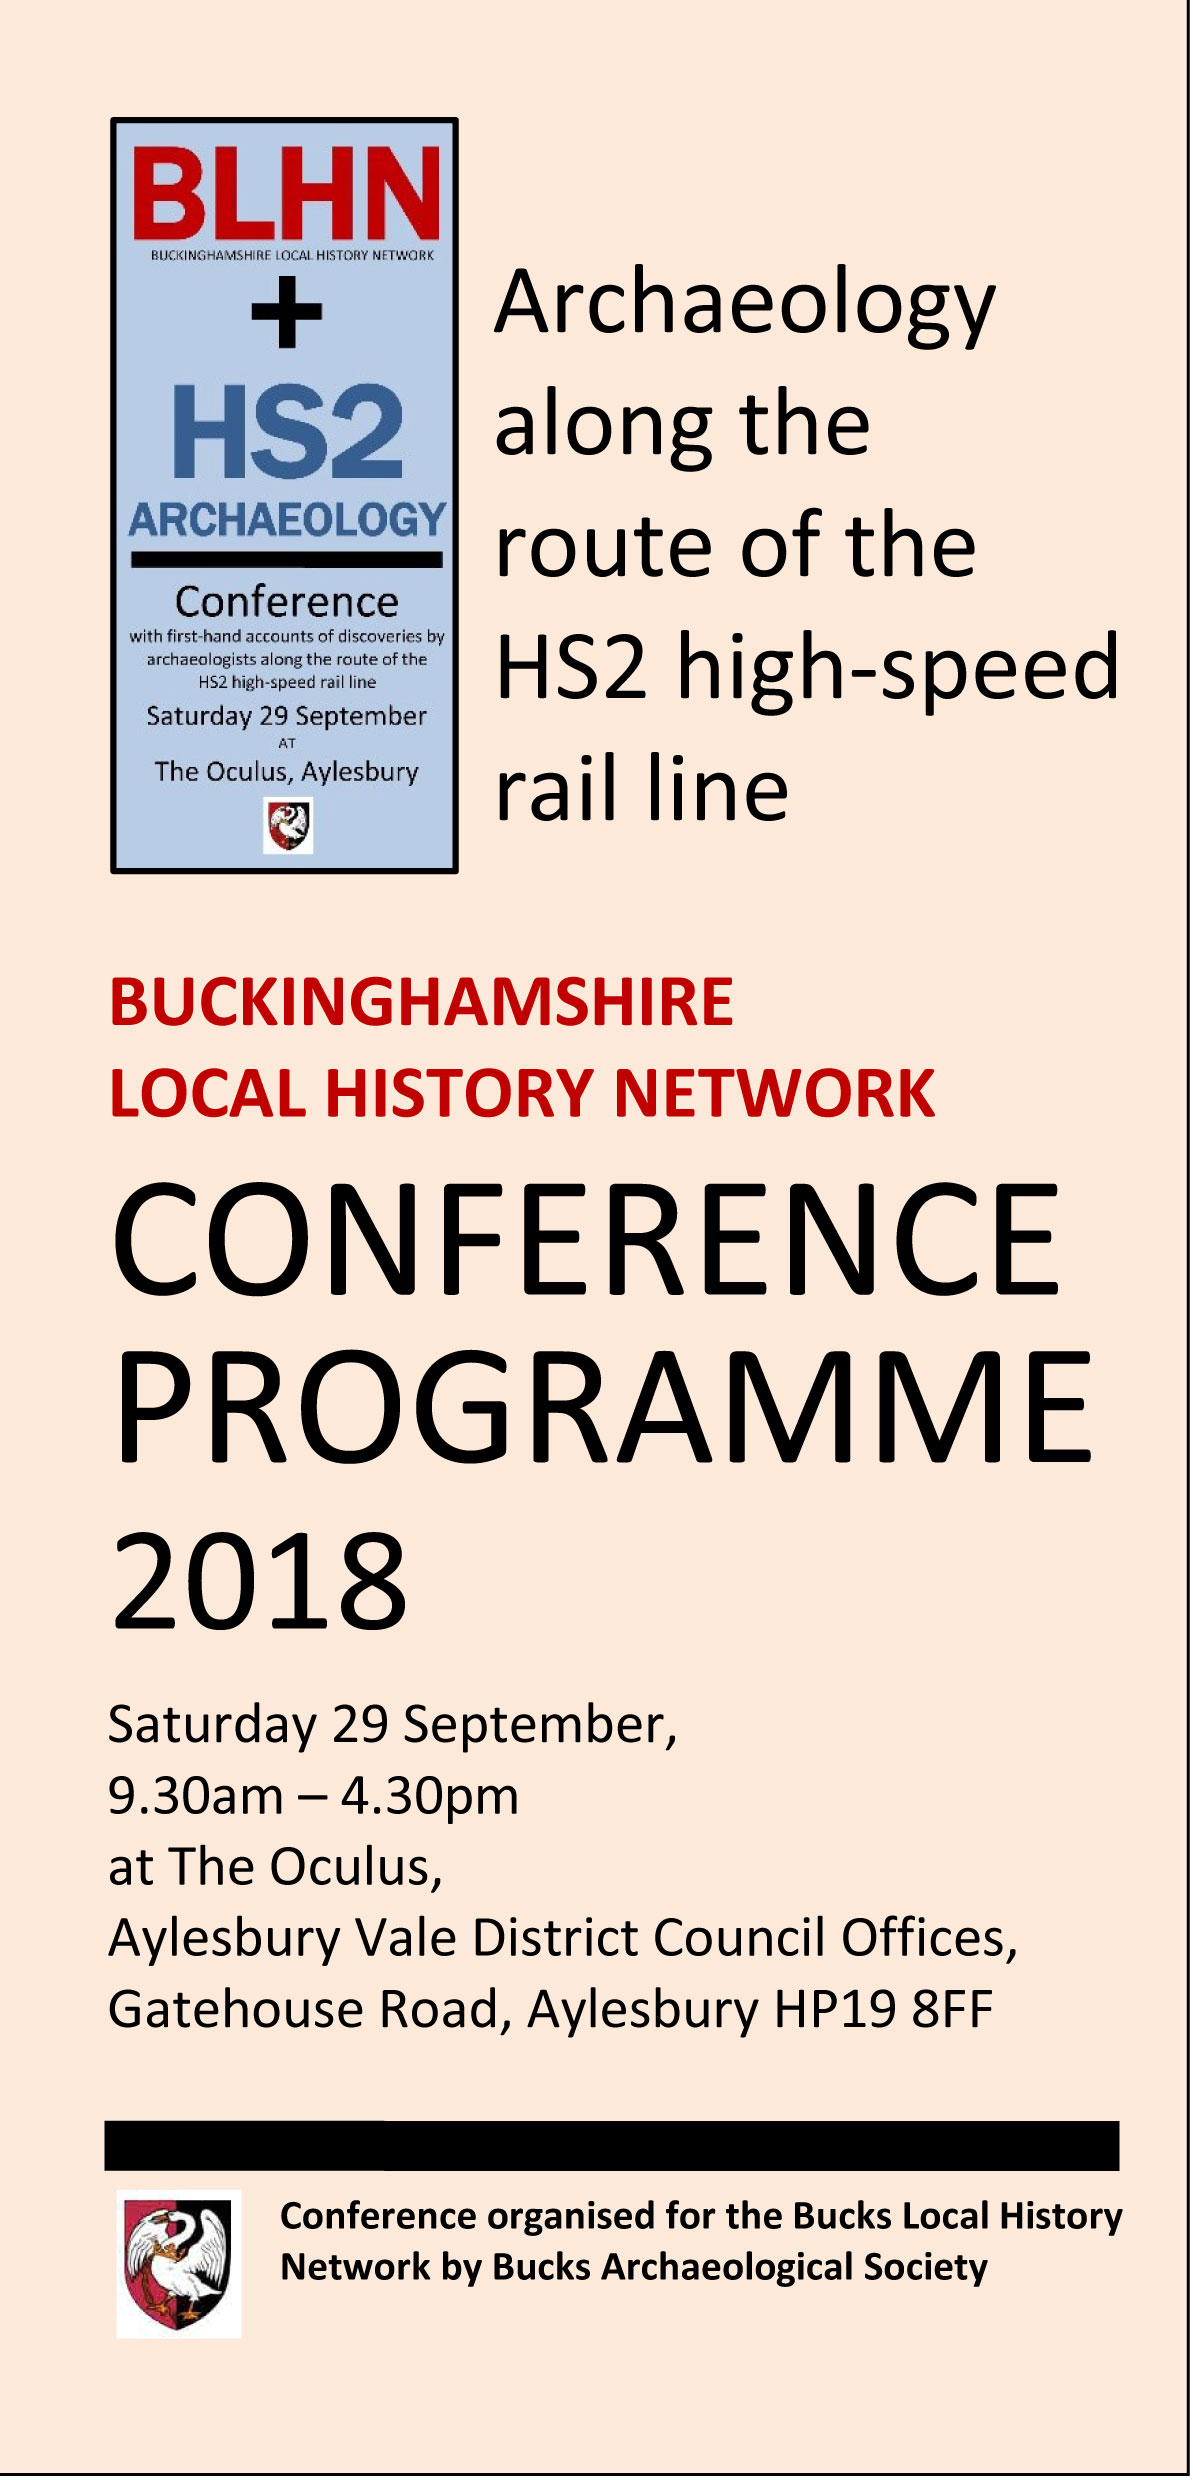 The BLHN 2018 conference programme